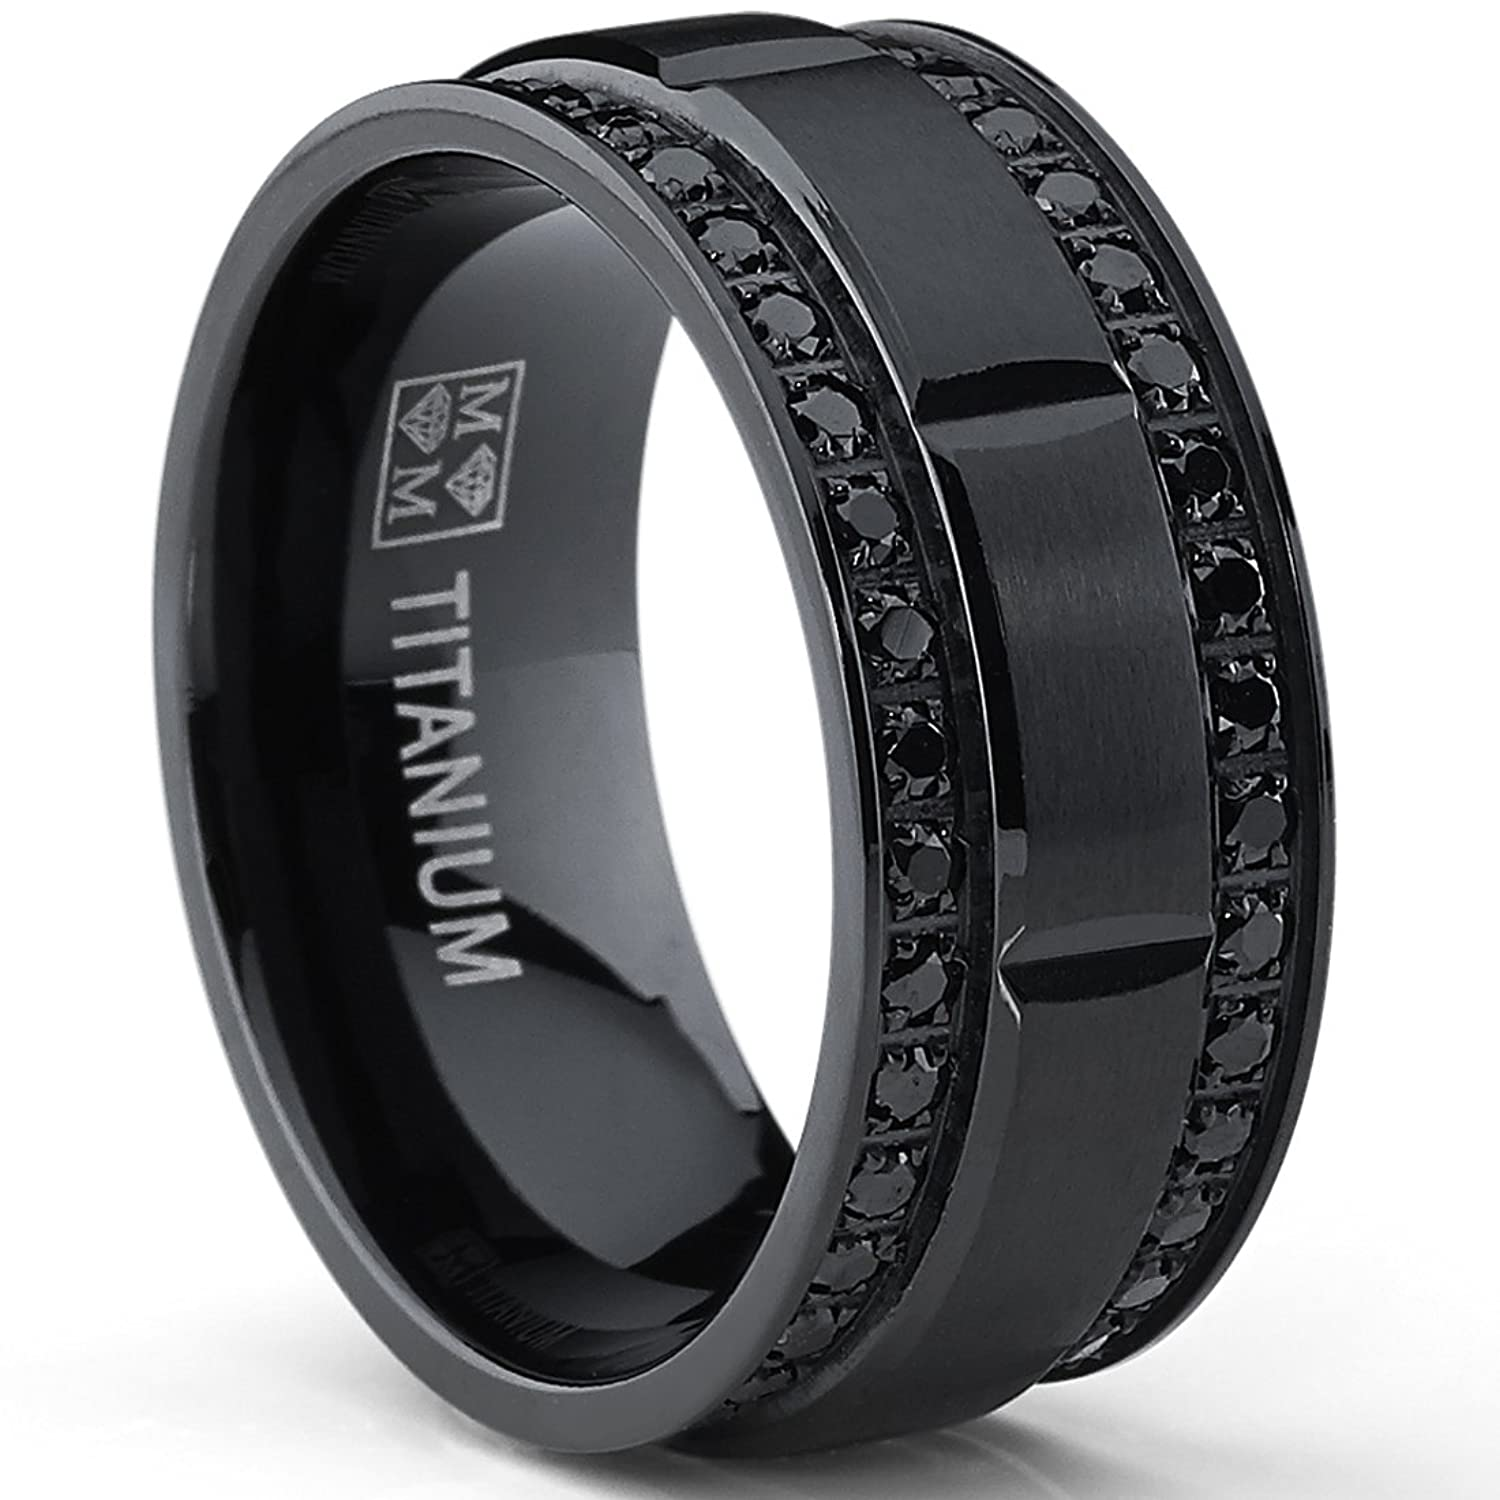 BS men wedding rings Amazon com 9MM Men s Black Titanium Wedding Band Ring with Double Row Black Cubic Zirconia Comfort Fit Jewelry